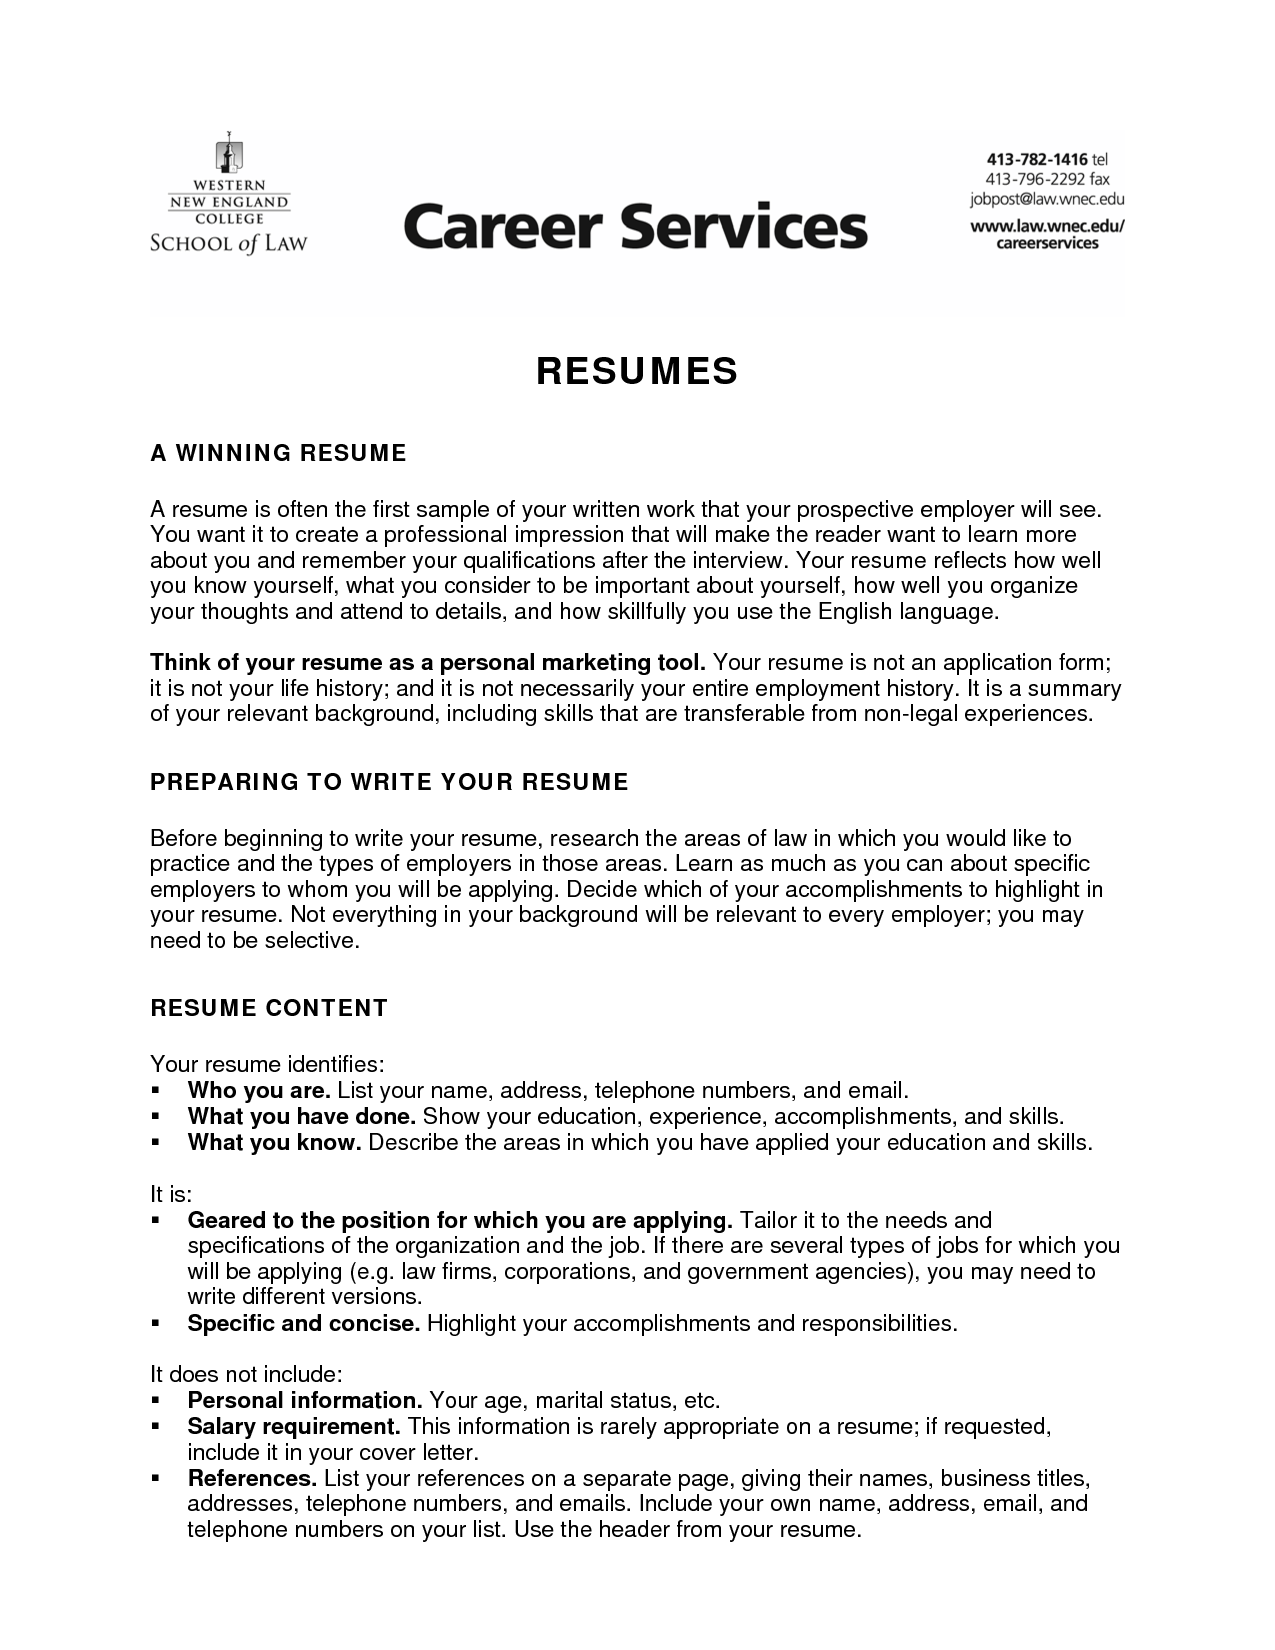 Great Objective Resume Criminal Justice   Http://www.resumecareer.info/objective  Criminal Justice Resume Objective